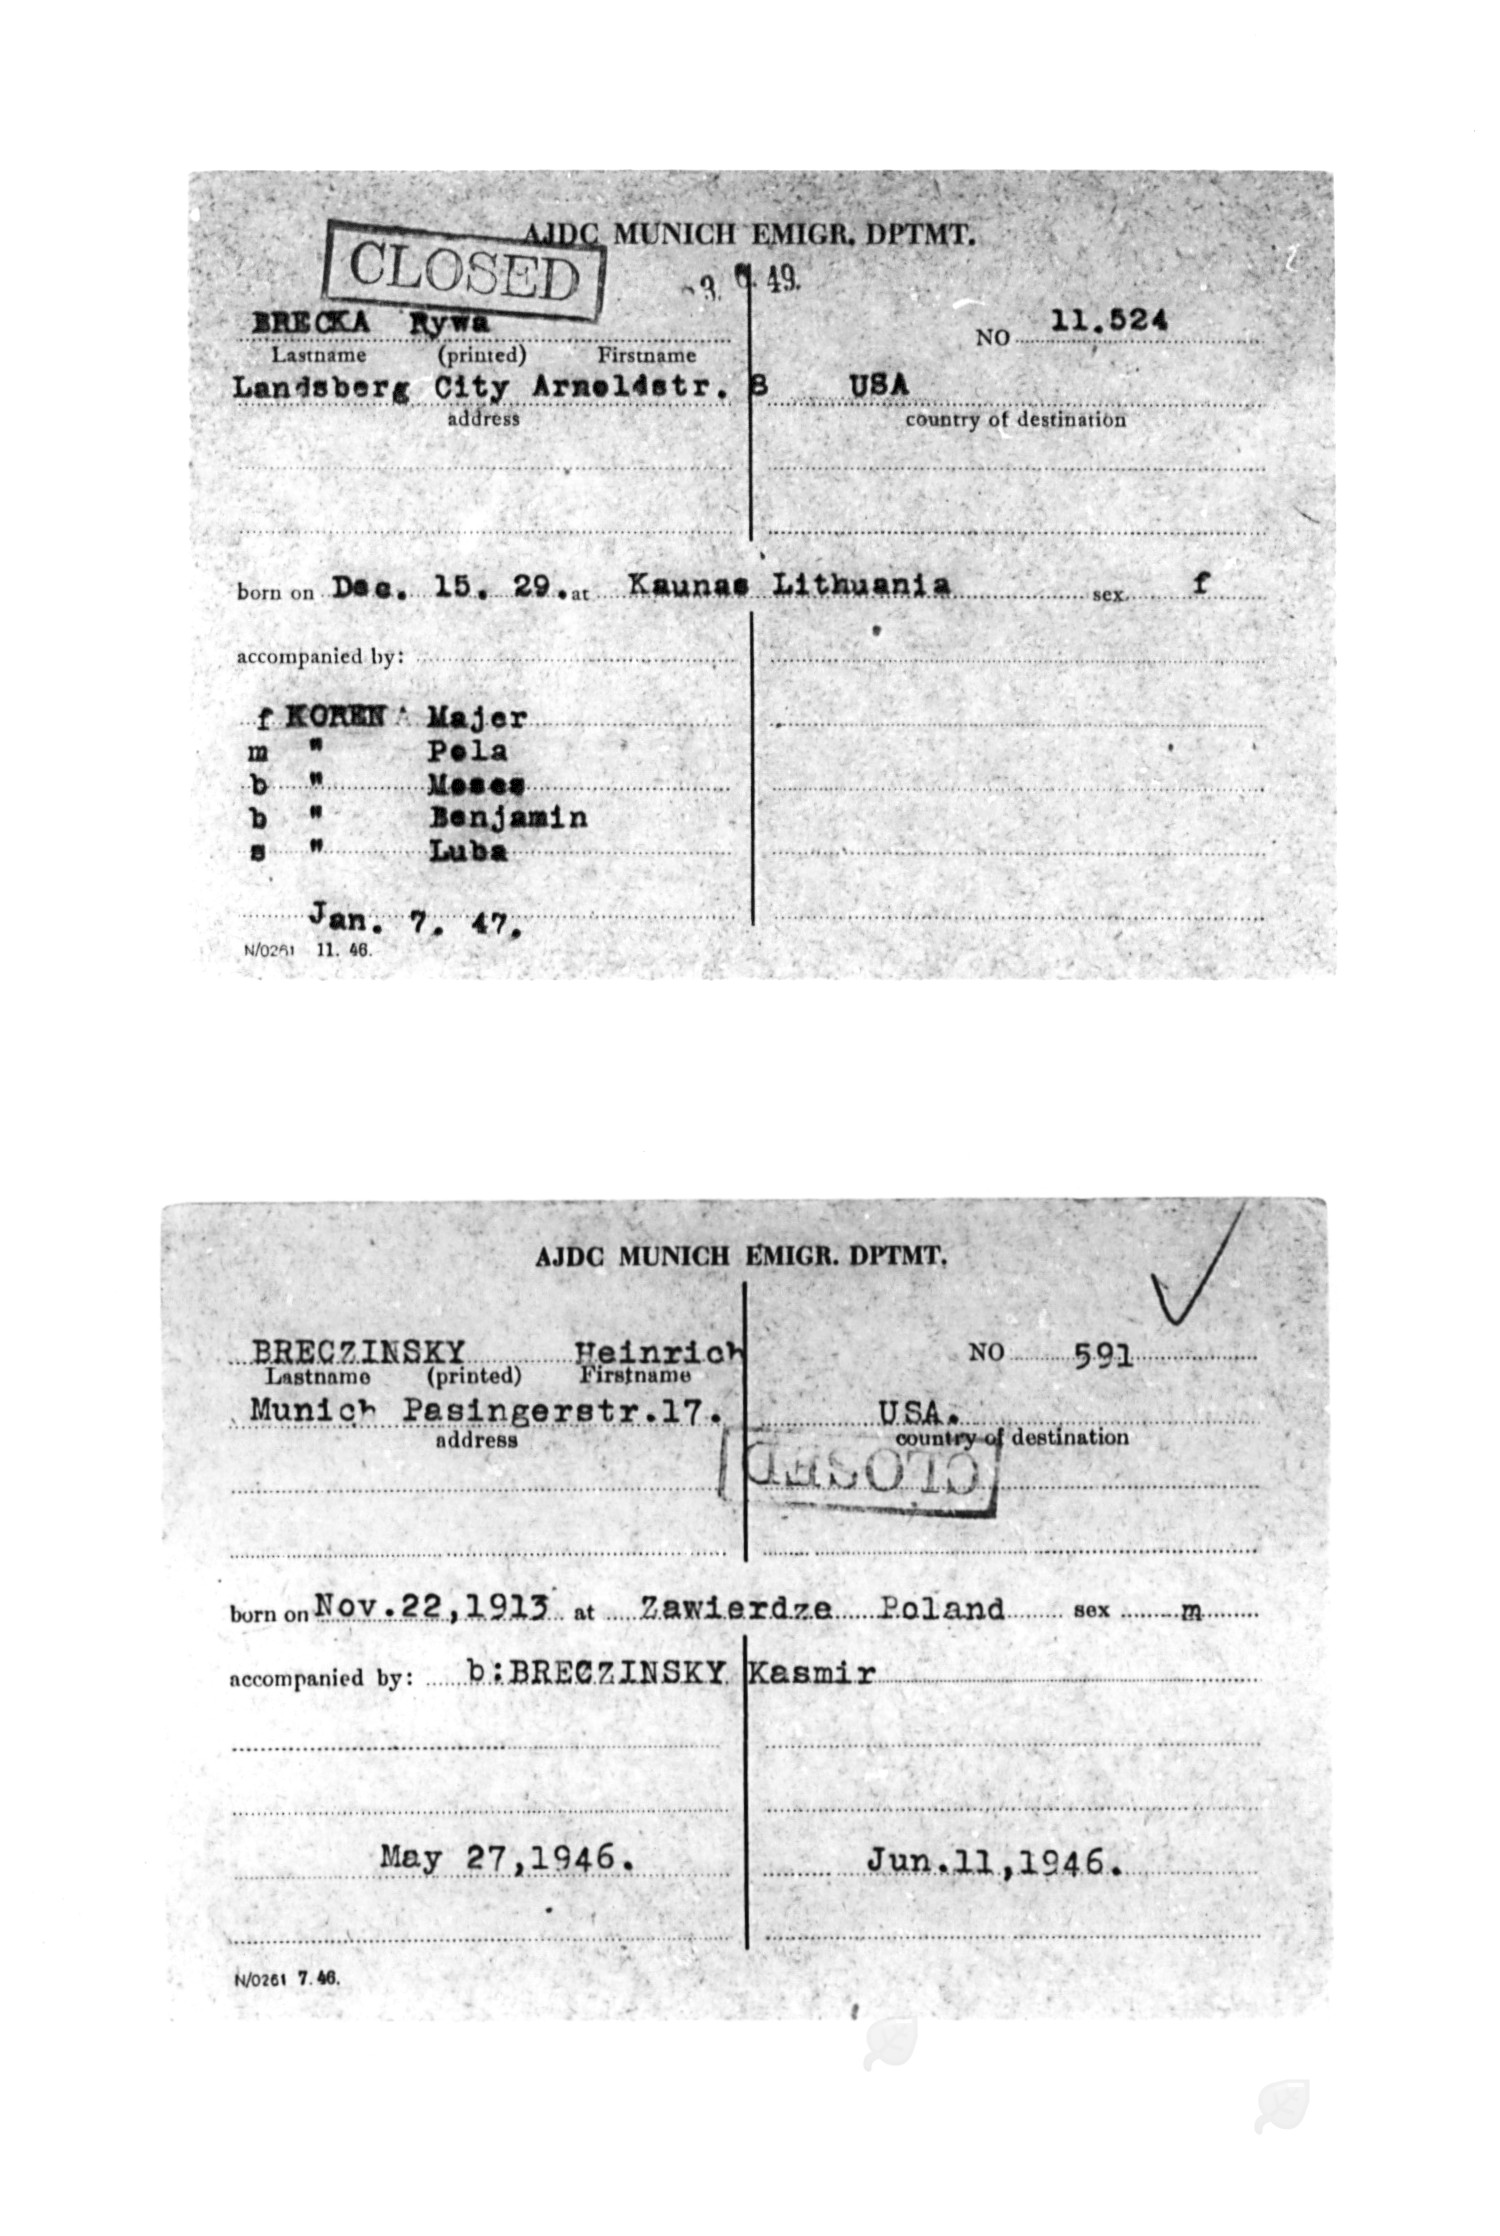 documents will open in a new window